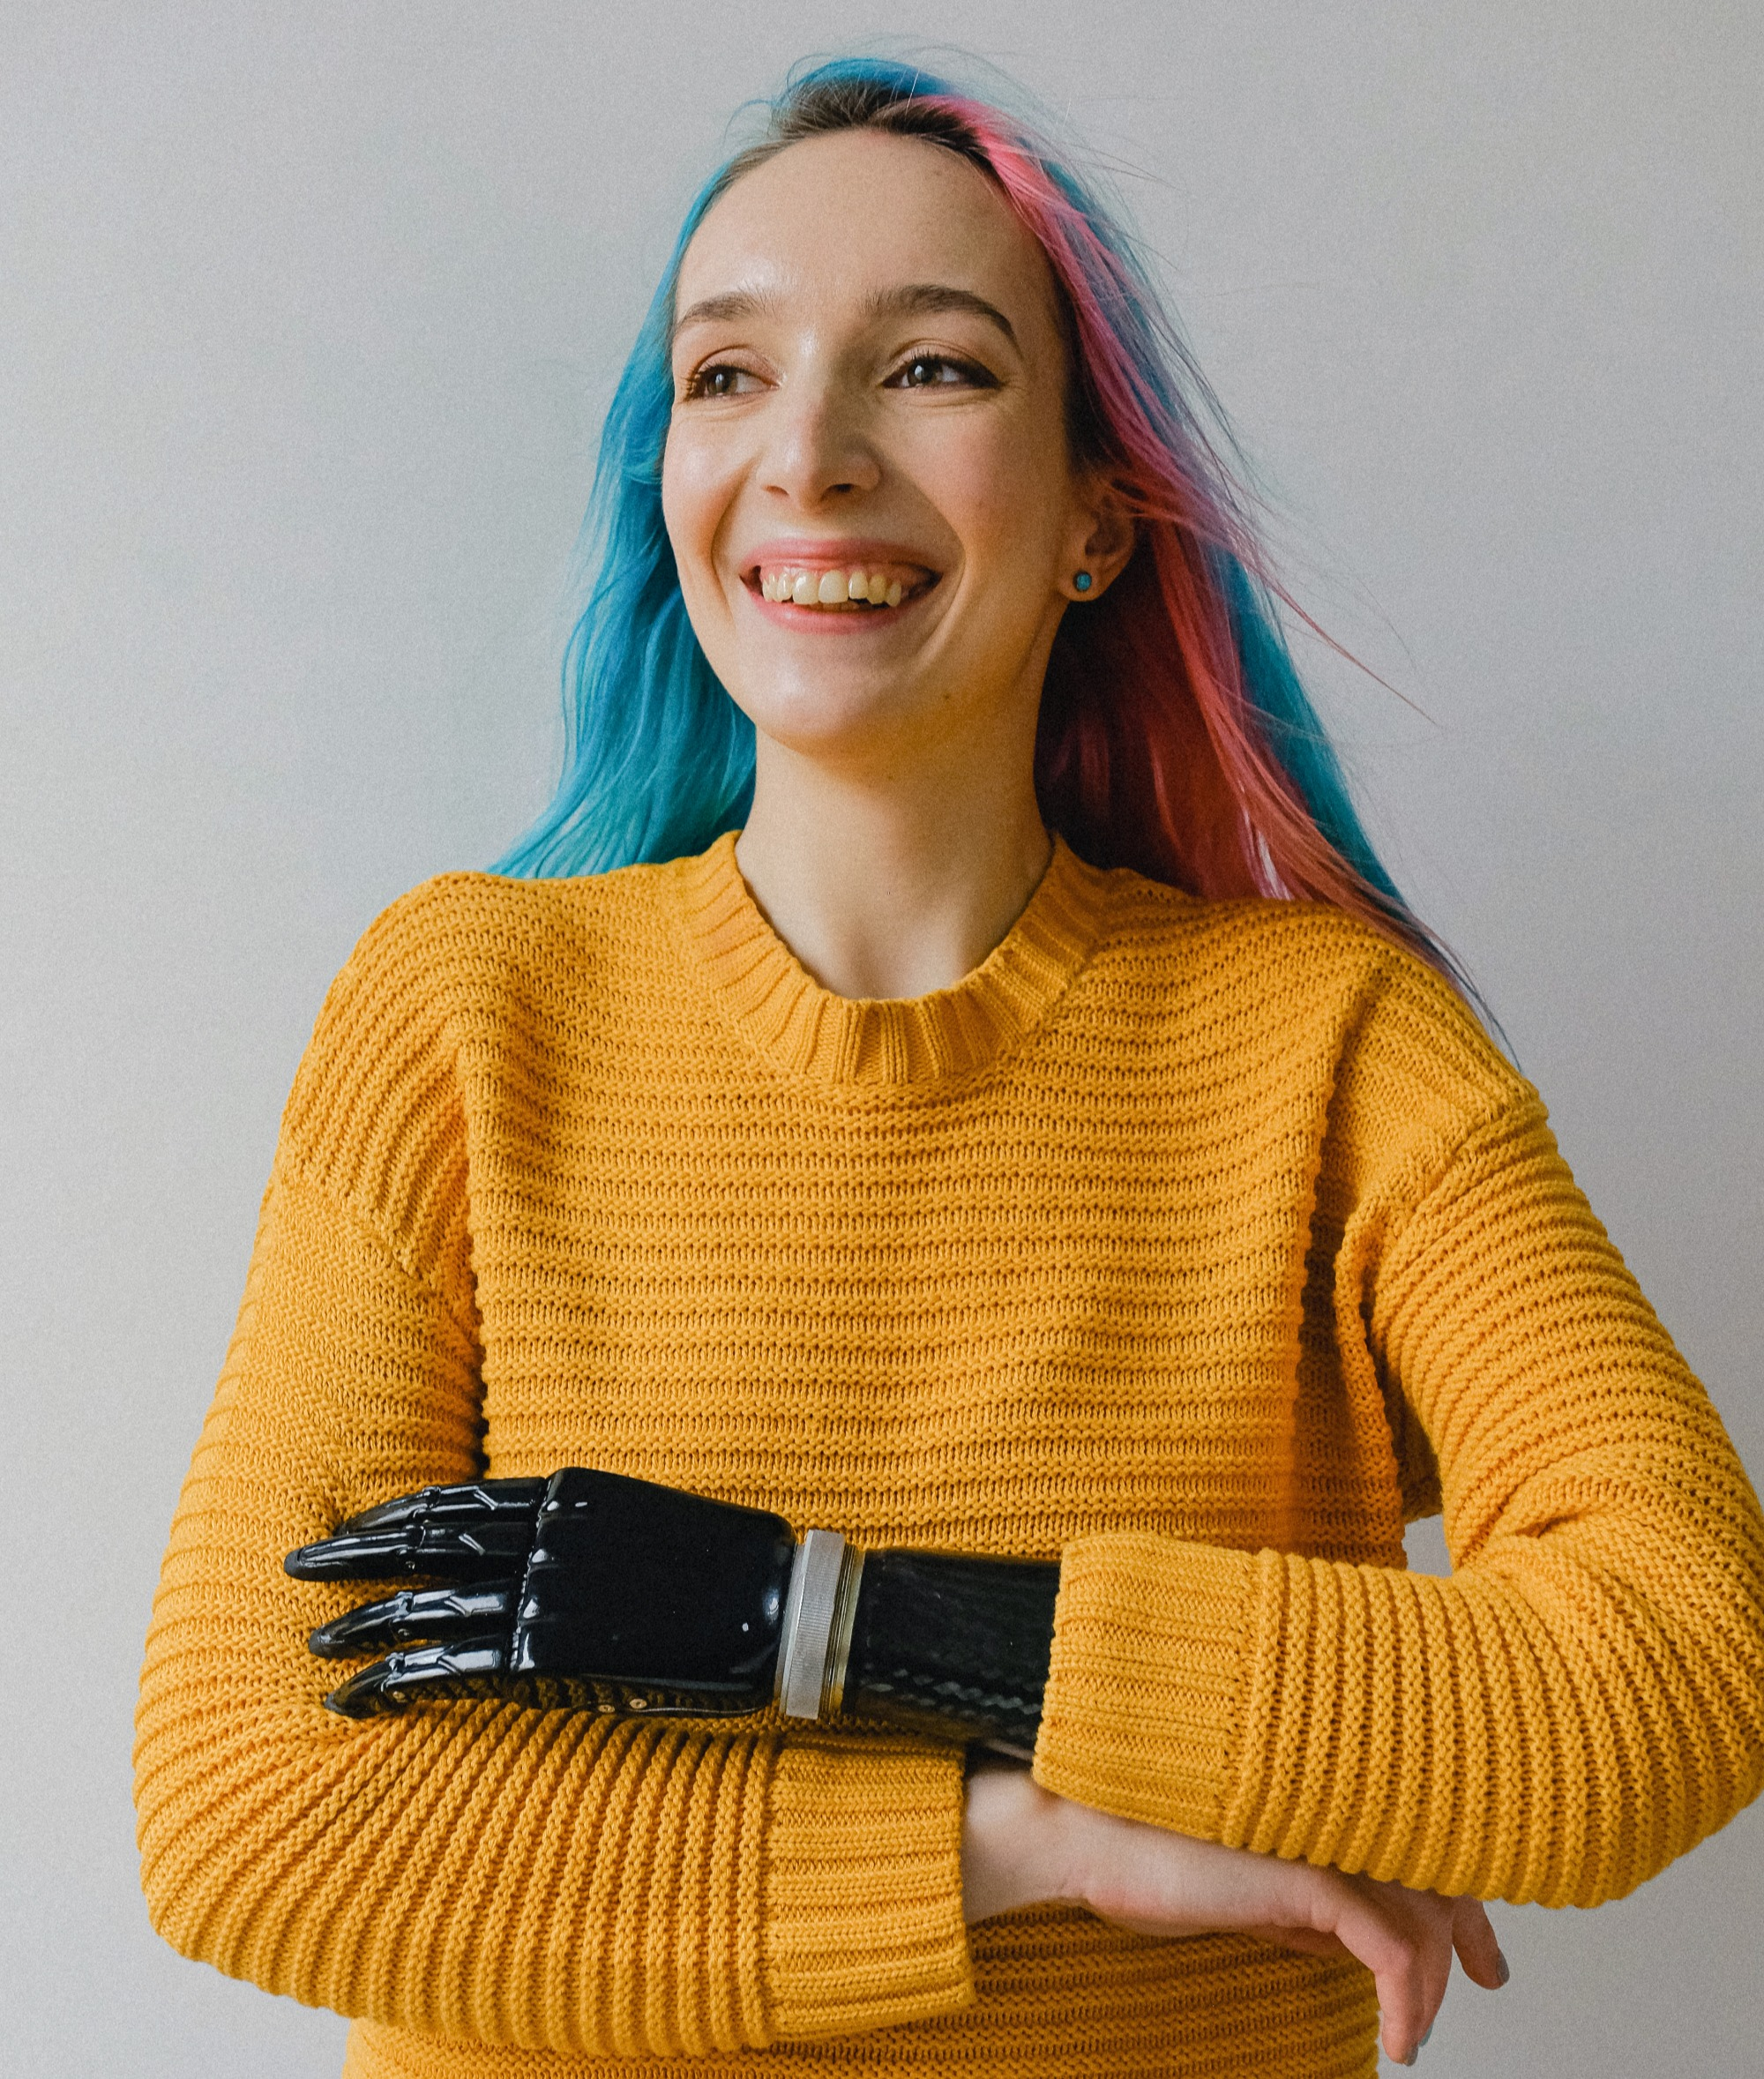 A light skinned woman with long pastel rainbow hair and a golden yellow sweater is smiling widely while looking off to the left of the camera. She holds her arms in front of her and it